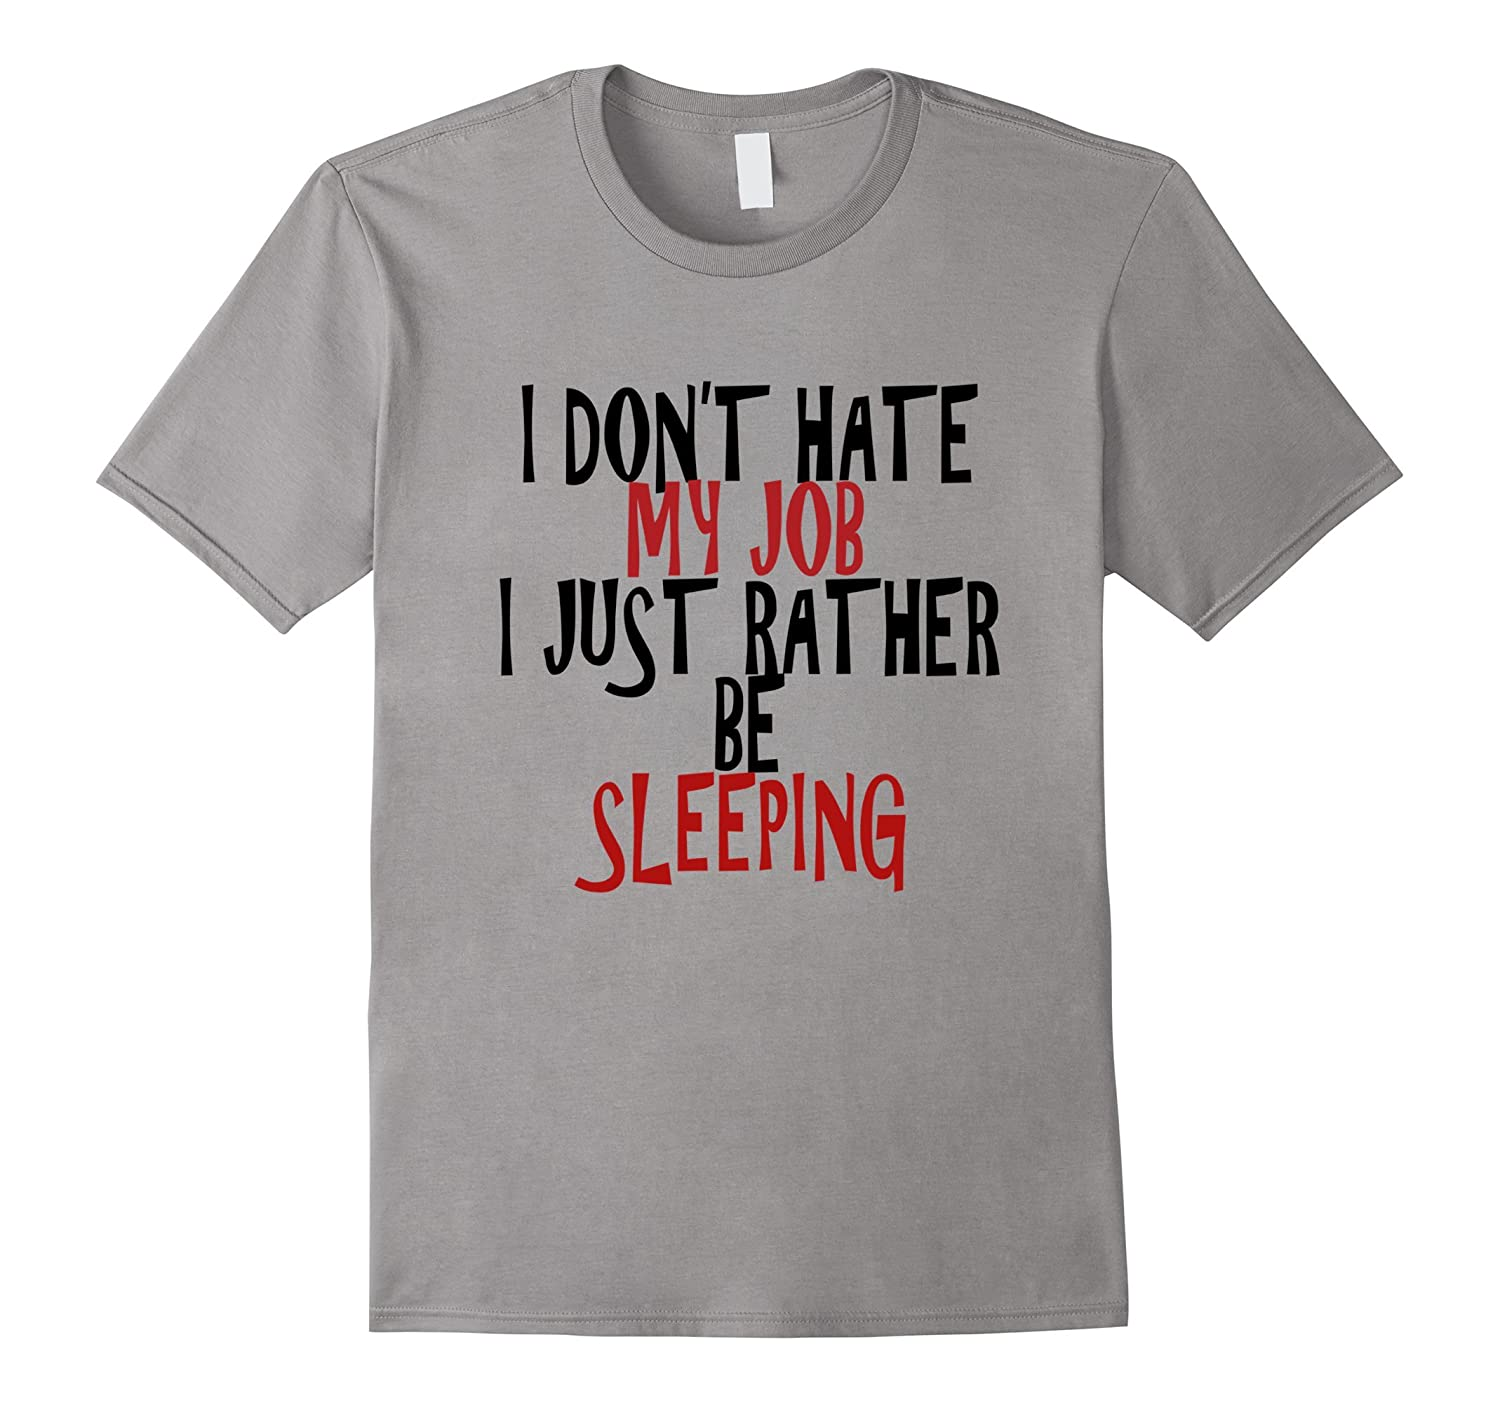 I don't hate my job I just rather be sleeping t-shirt-Art